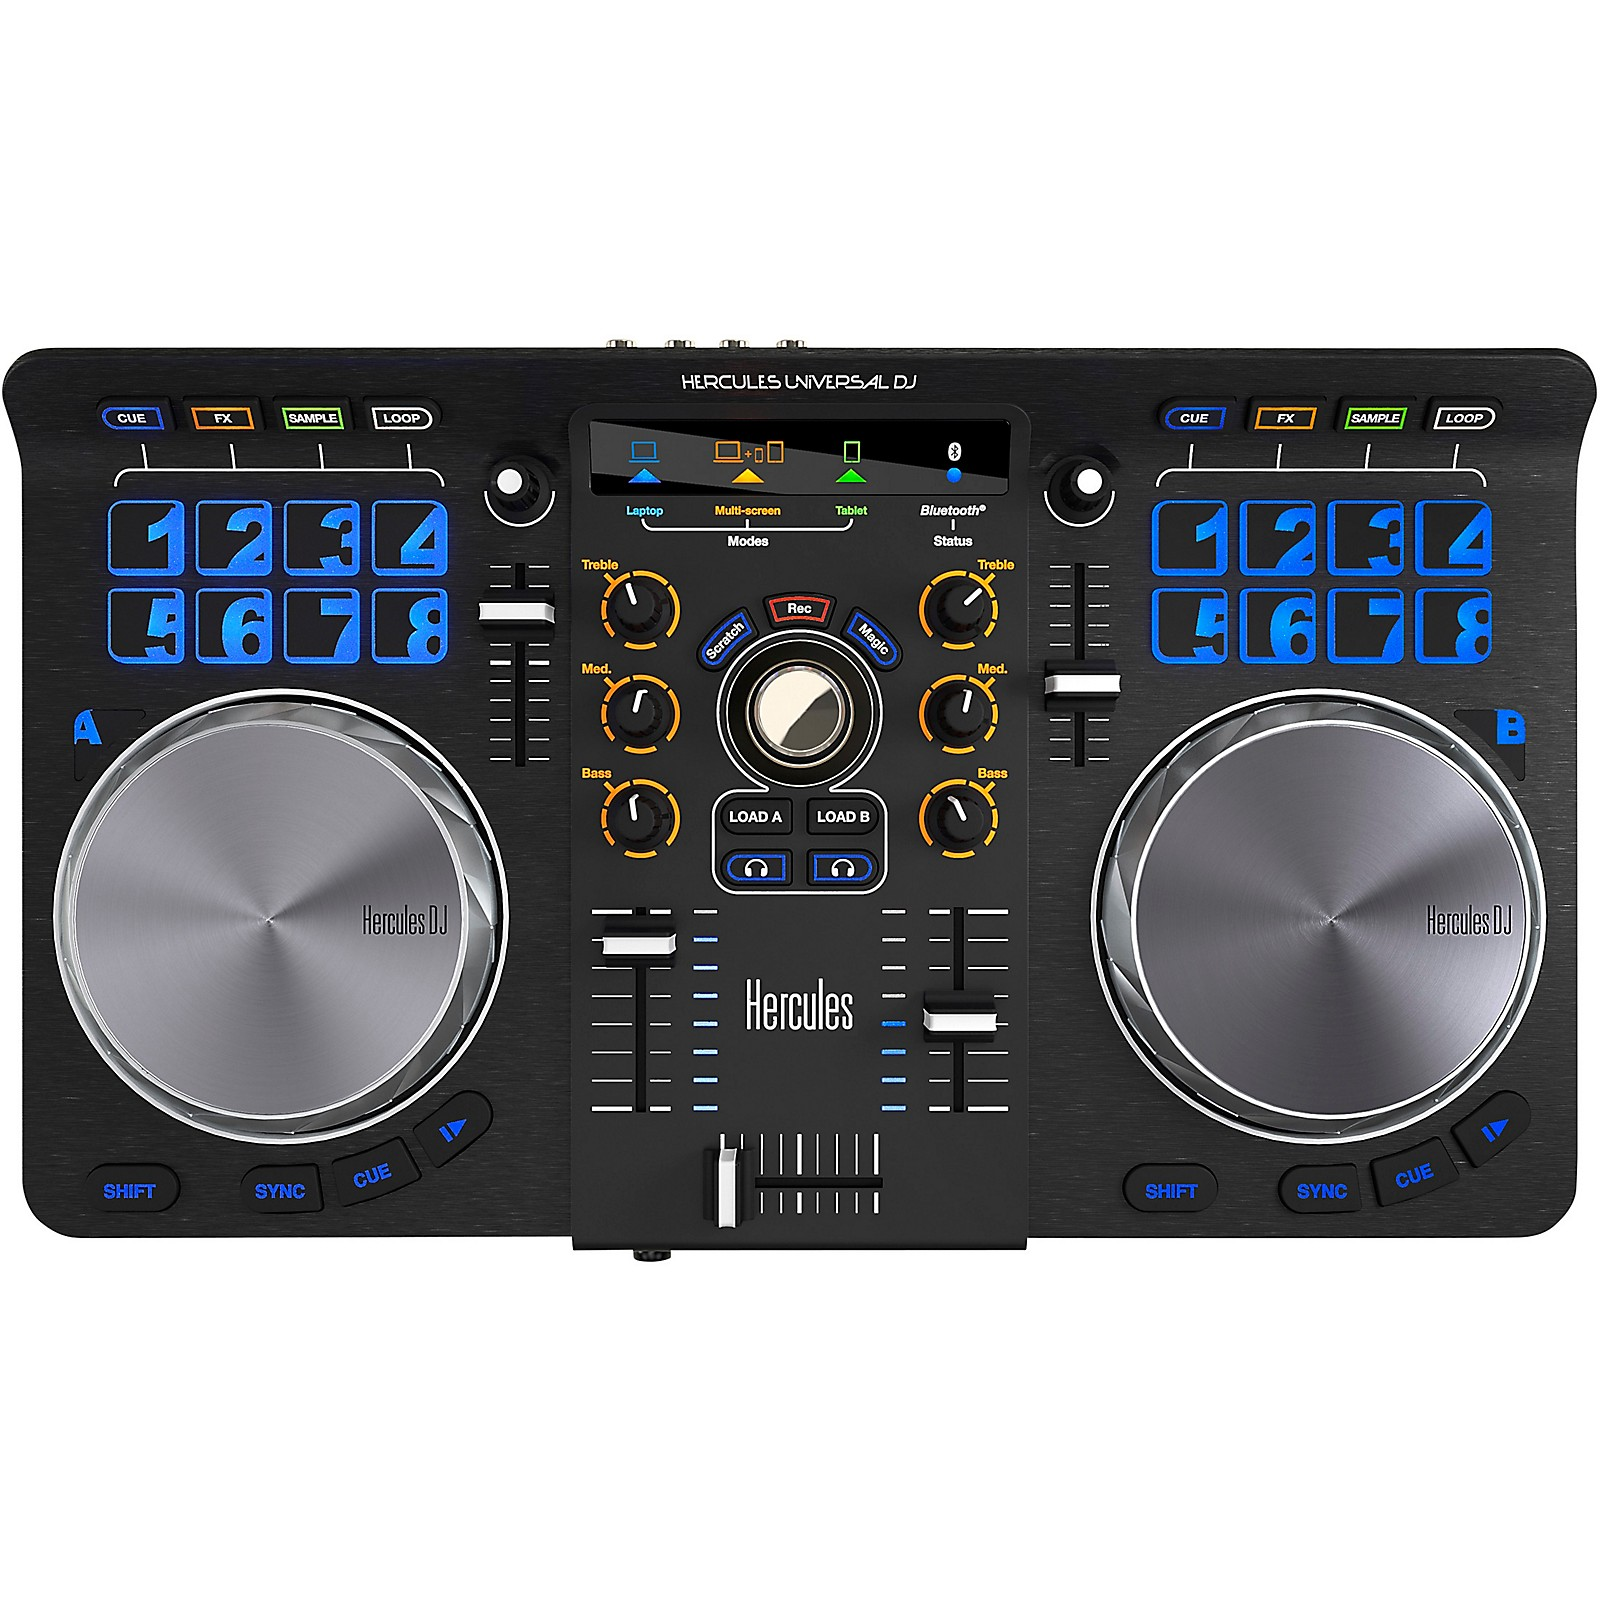 Hercules DJ Universal DJ Compact Controller with Bluetooth